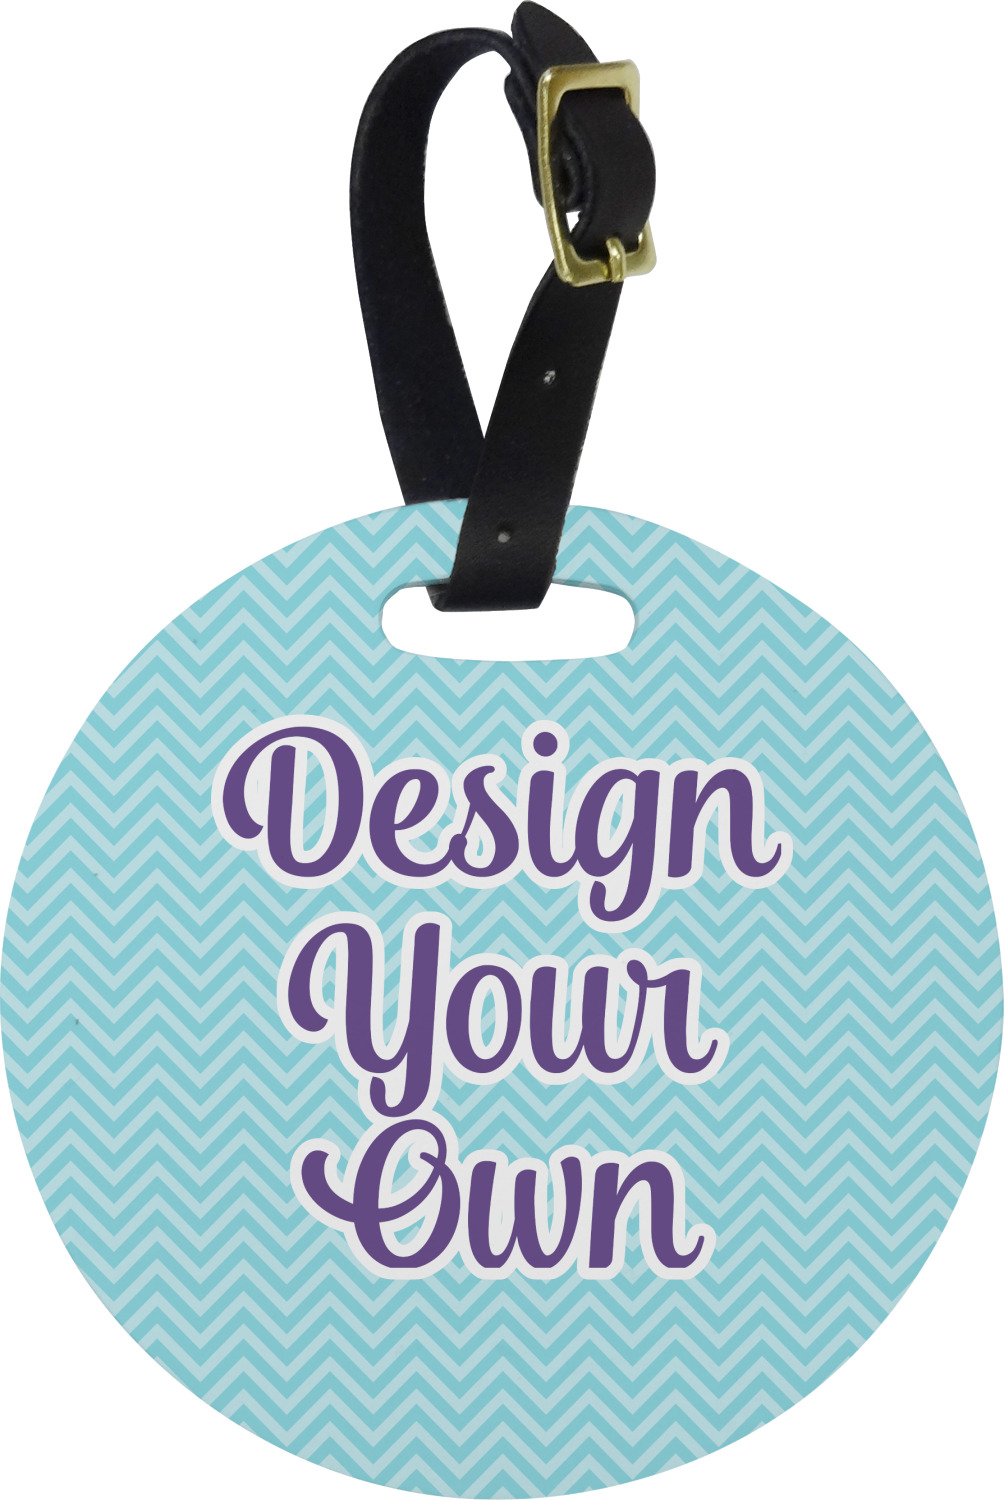 Design Your Own Round Luggage Tag Personalized